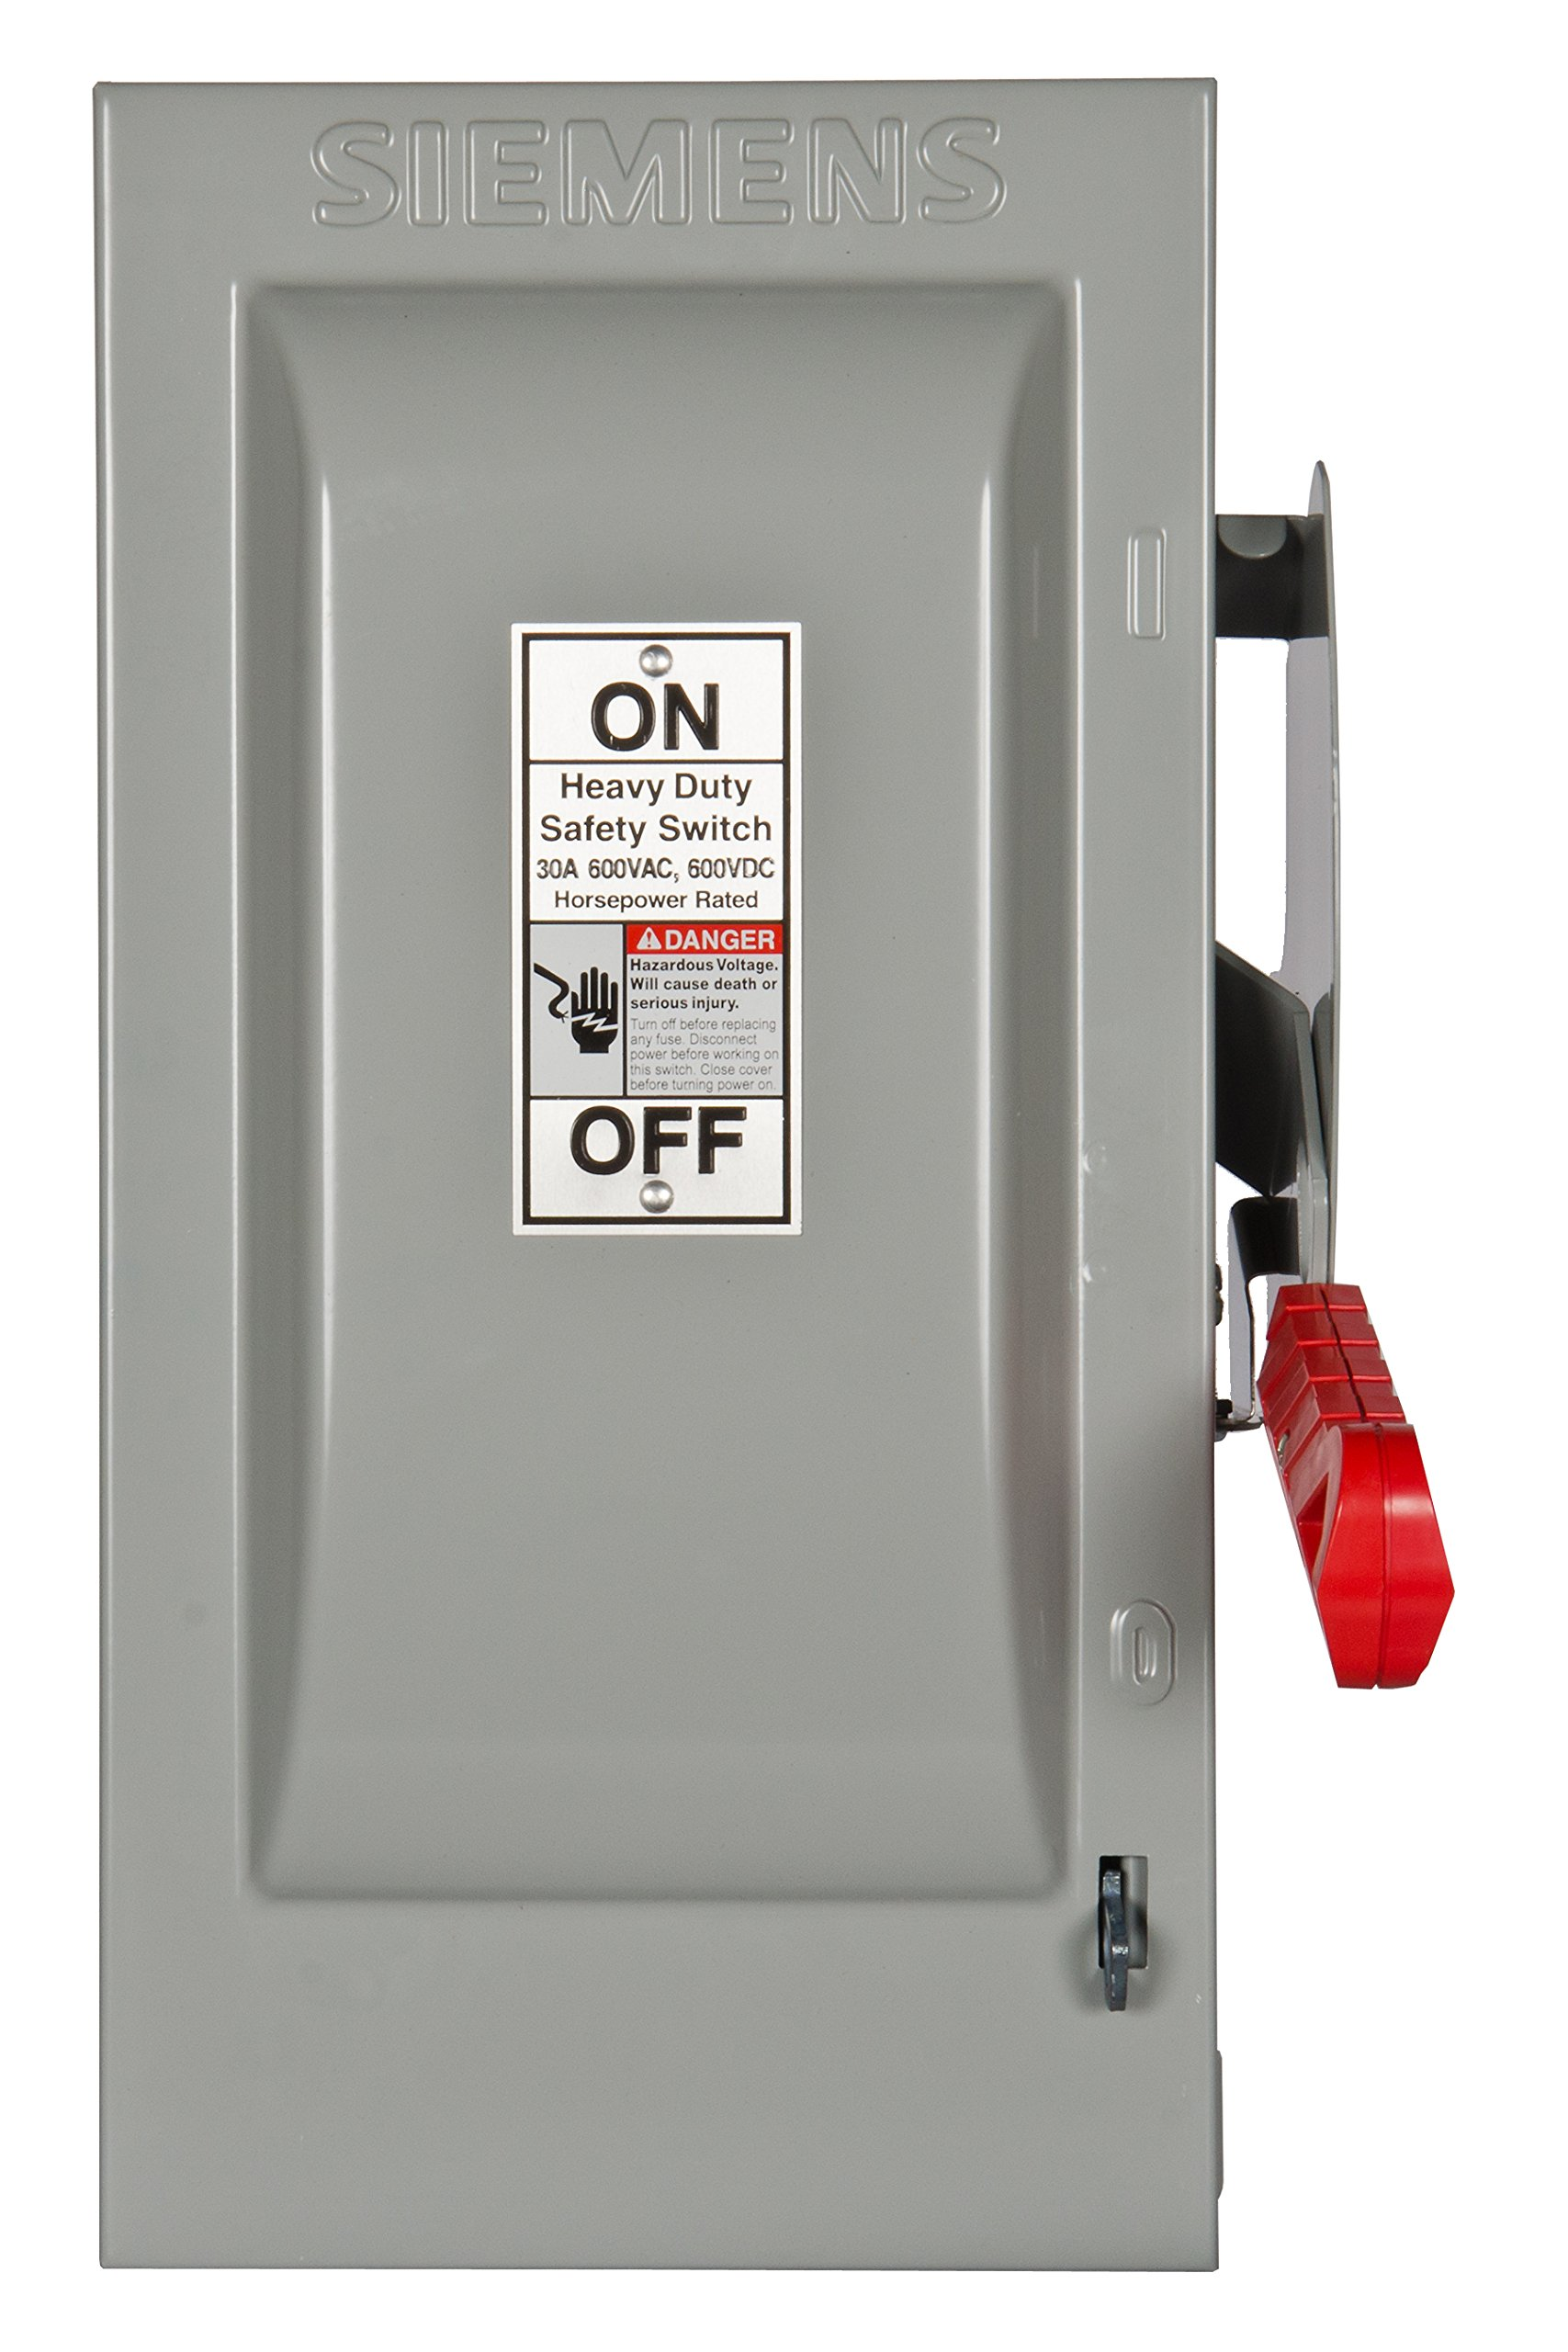 Siemens HF261 30-Amp 2 Pole 600-volt 2W Fused Heavy Duty Safety Switches